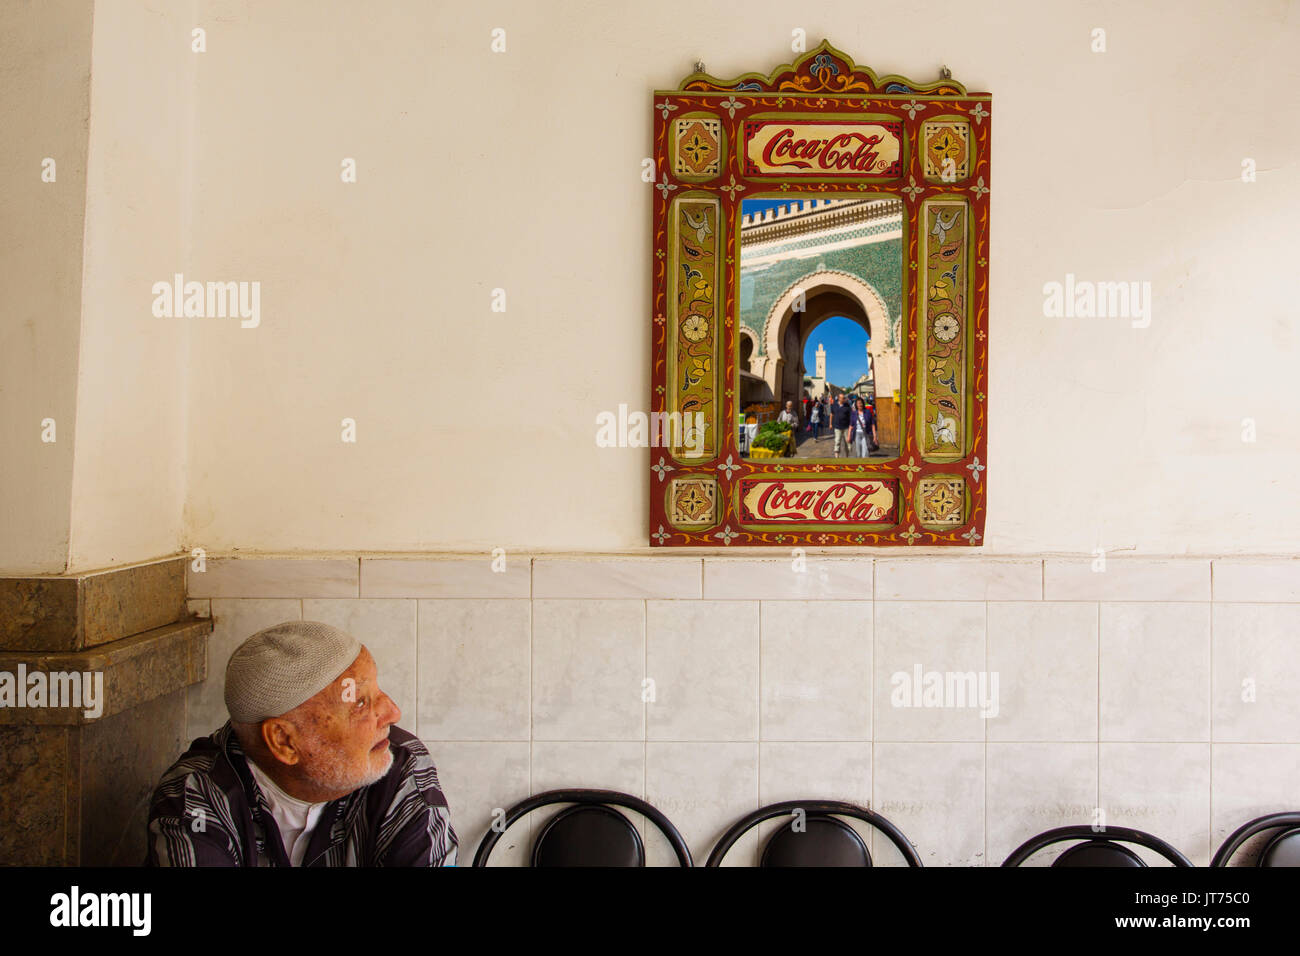 Street life scene. Bab Bou Jeloud gate reflected in a mirror, main entrance to Souk Medina of Fez, Fes el Bali. Morocco, Maghreb North Africa - Stock Image